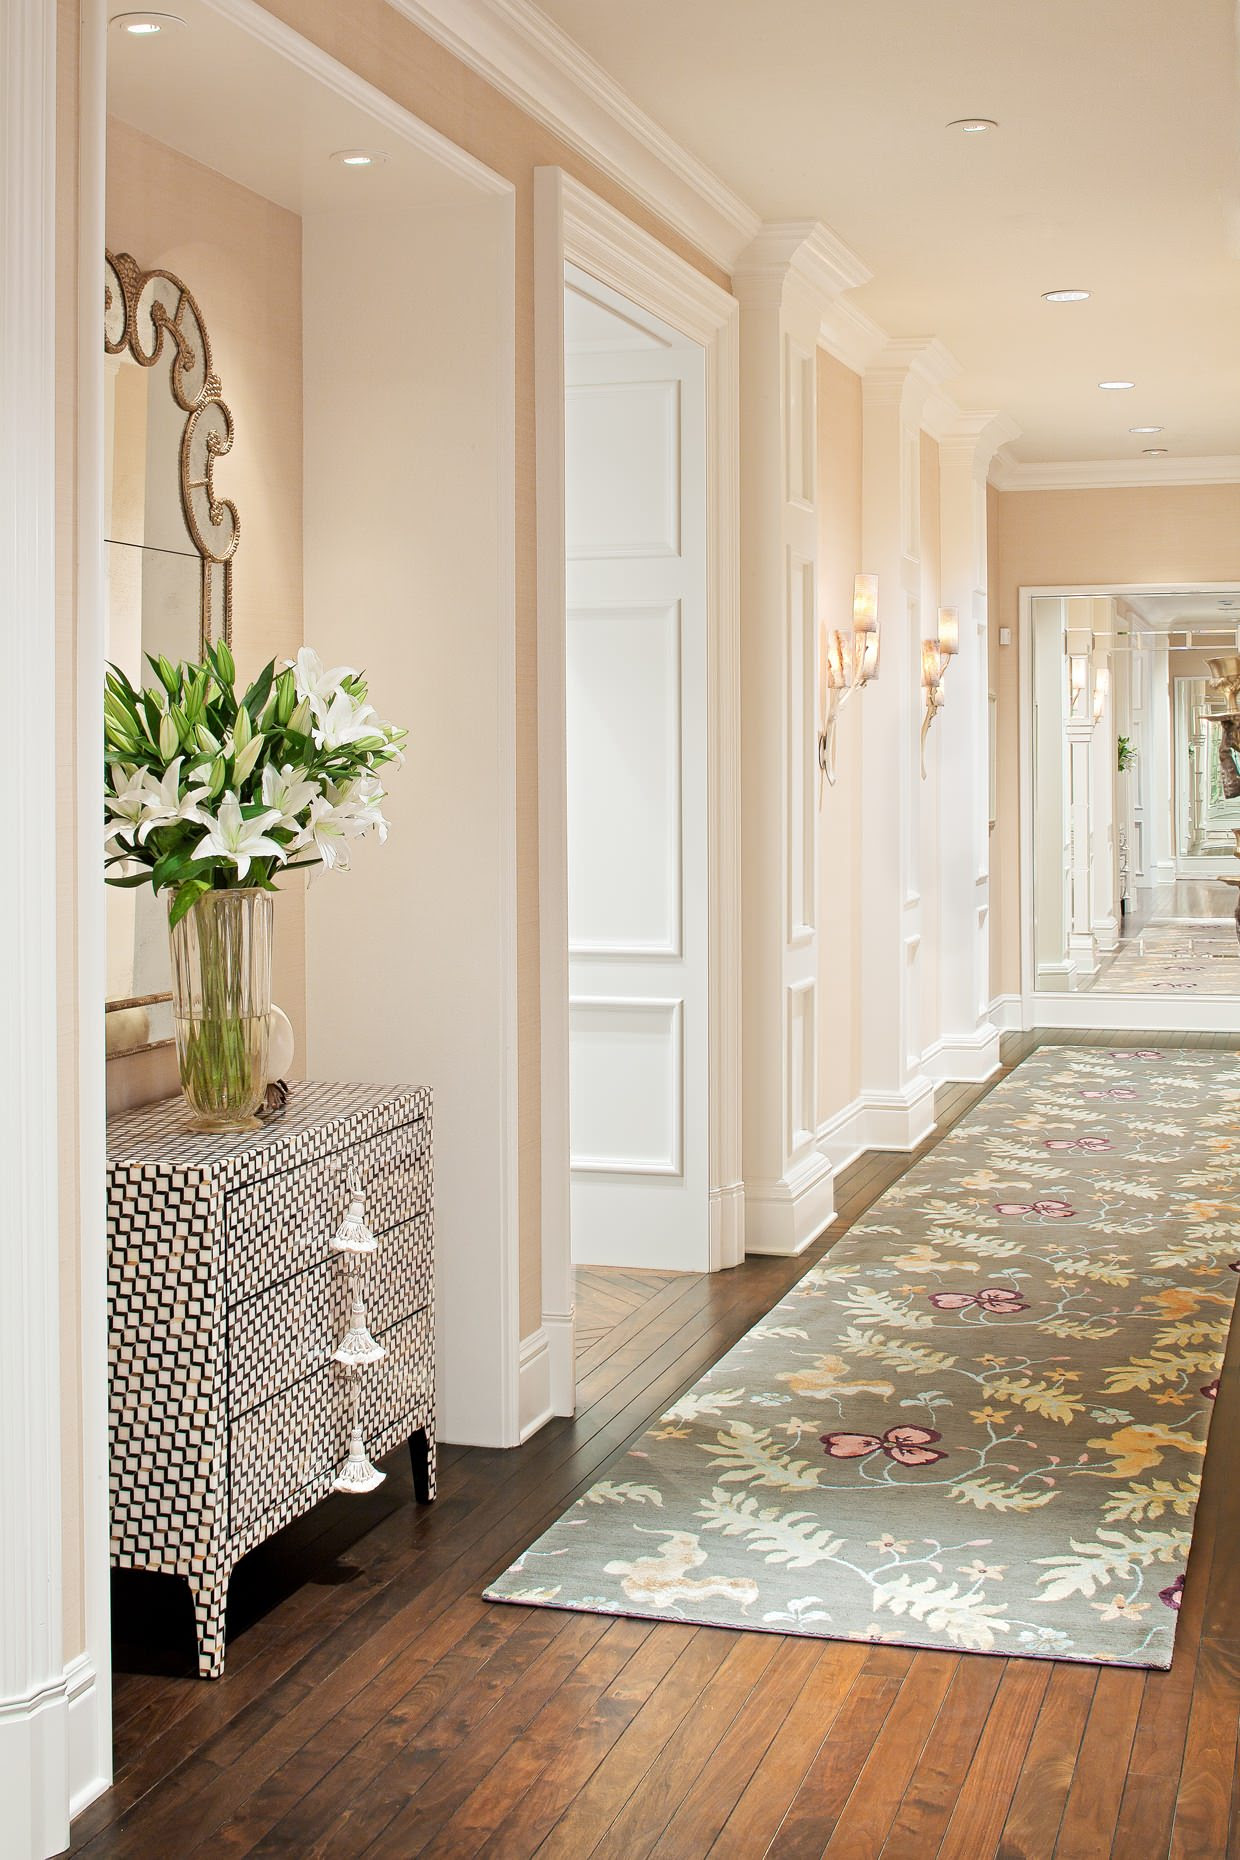 35 Hallway Decor Ideas to Try in Your Home | KeriBrownHomes